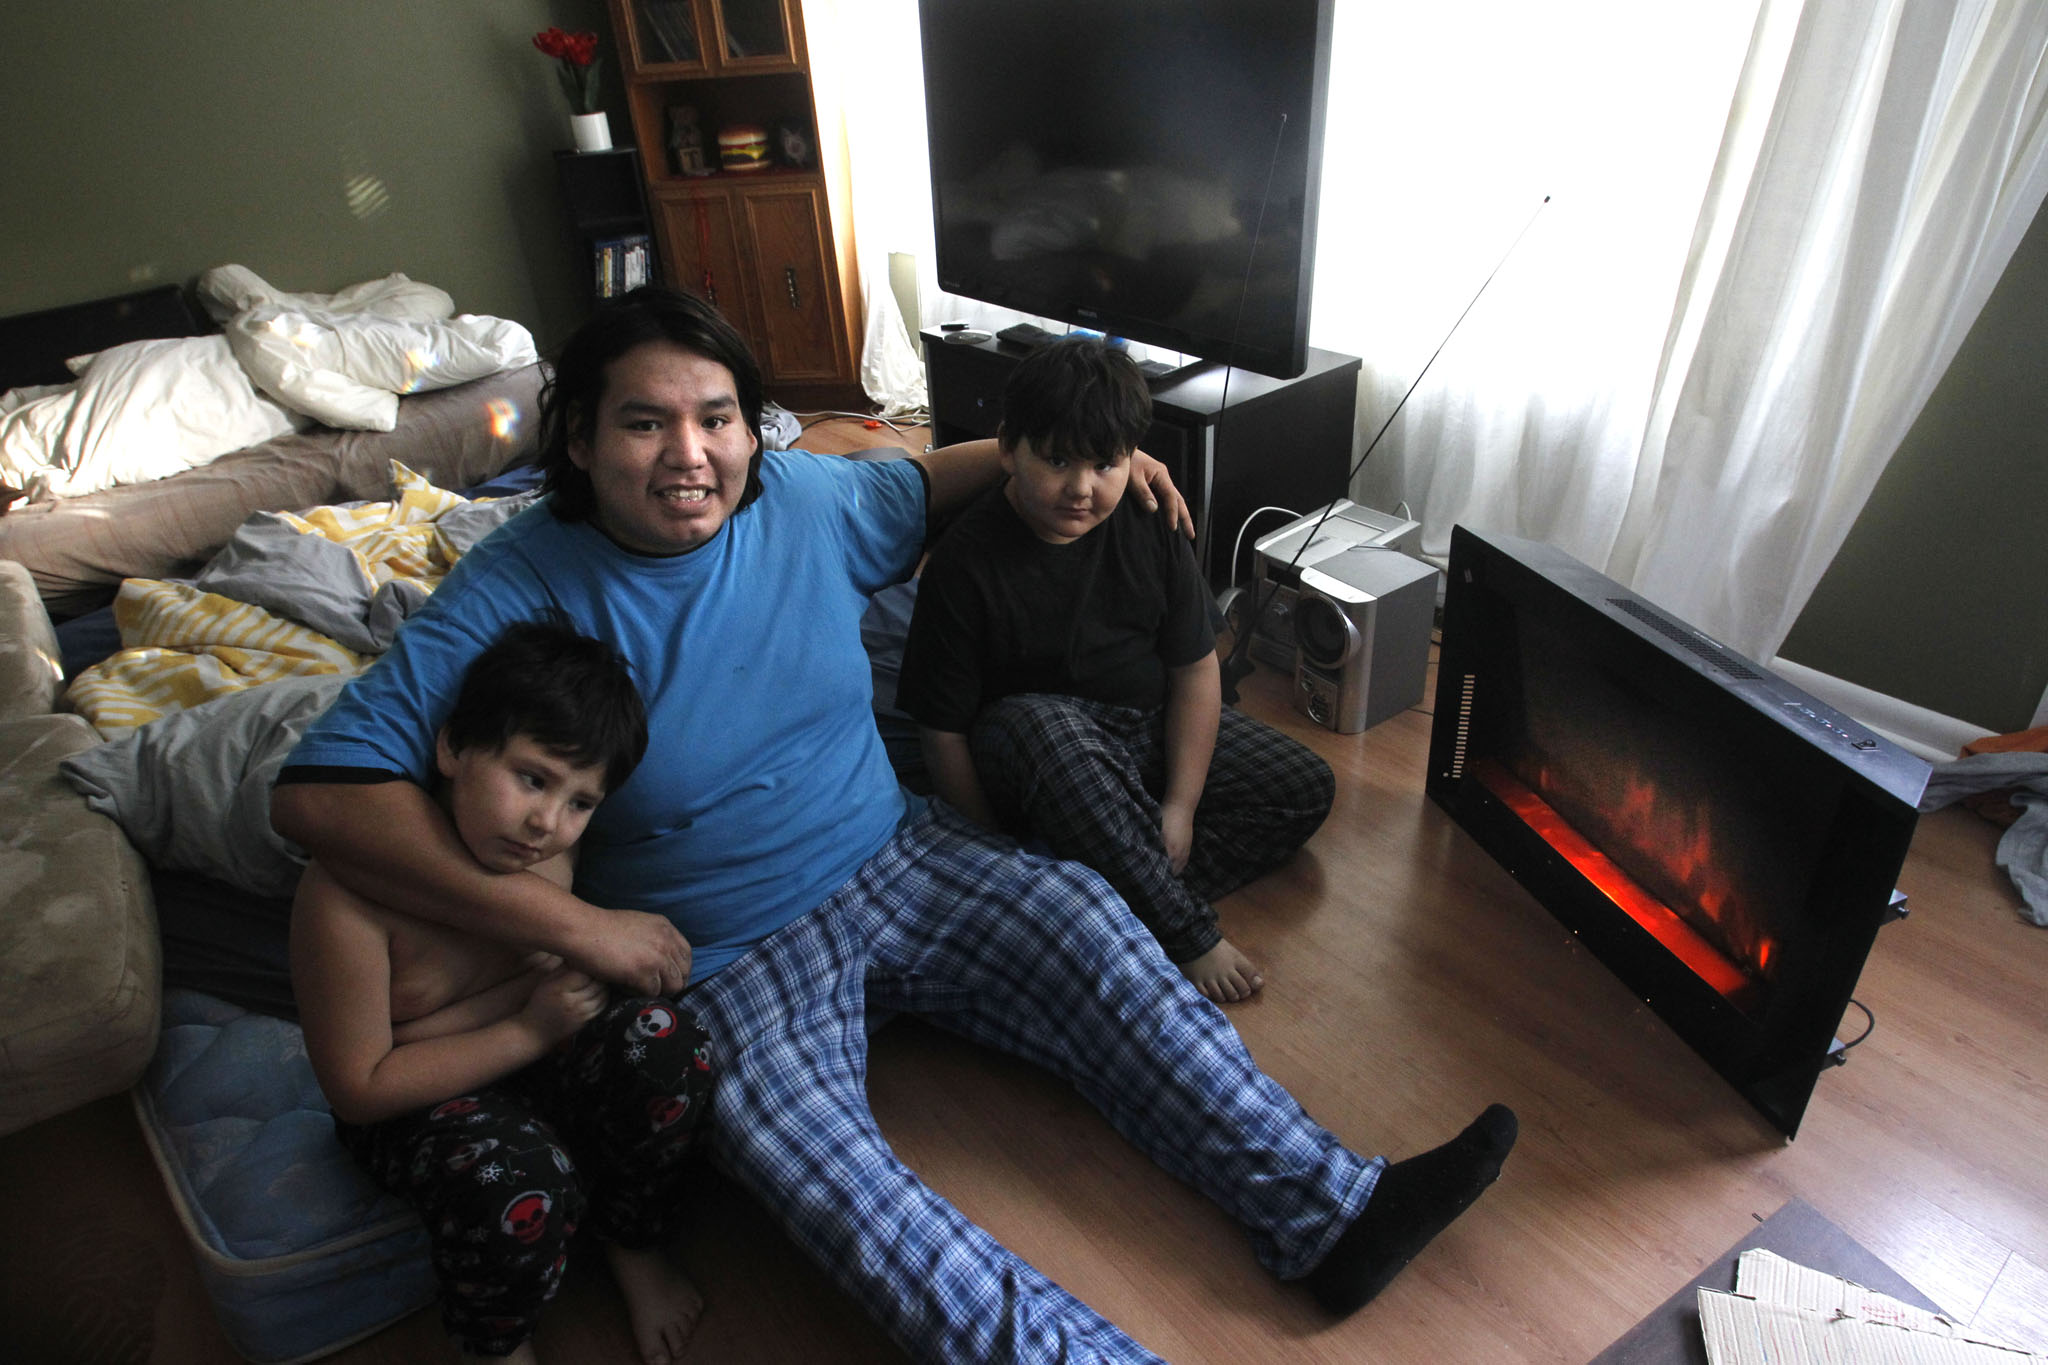 Derek Dowan and his two sons Dave,6 (left) and Daniel, 9, keep toasty warm Monday morning by the electric heater and heat from the kitchen stove in their Niverville home.